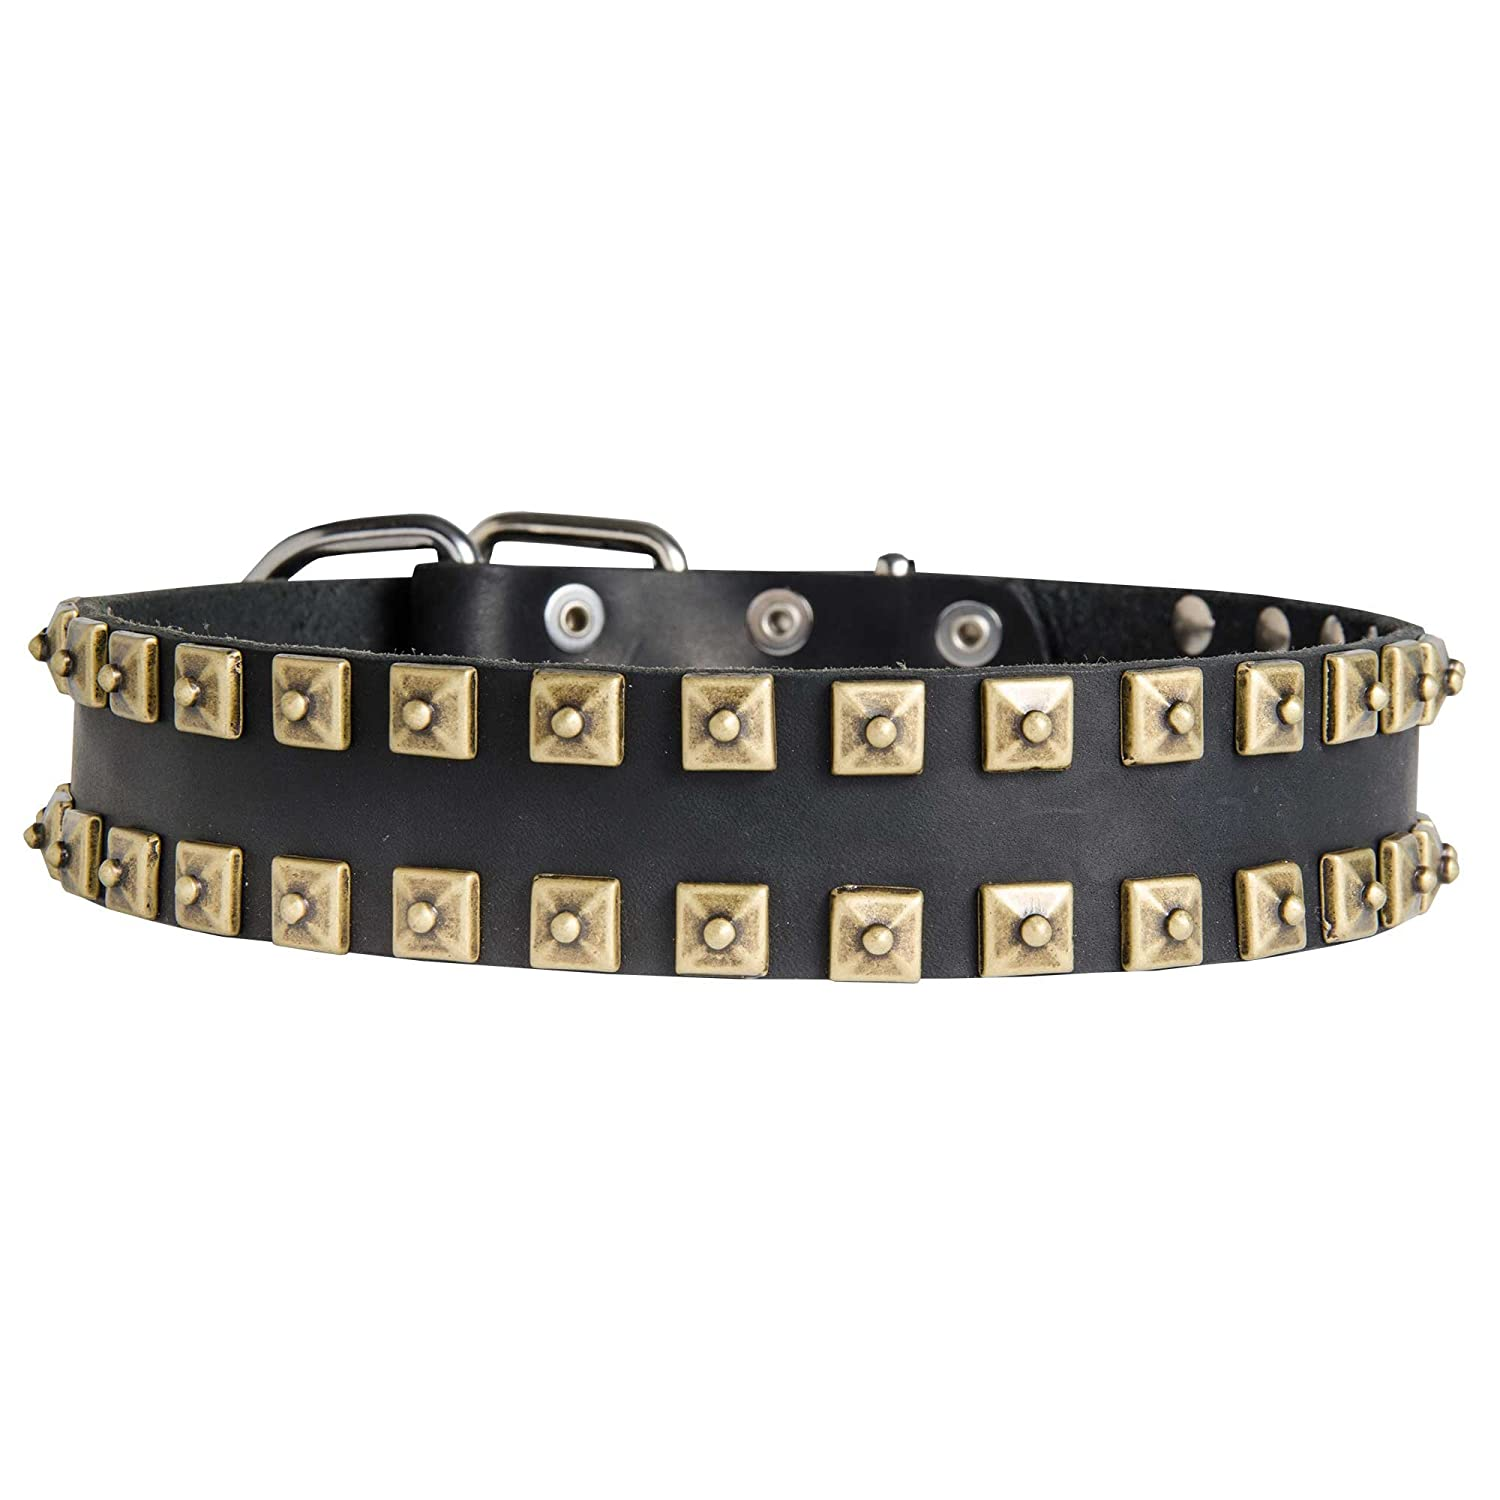 Black fits for 32 inch dog's neck size Black fits for 32 inch dog's neck size 32 inch Gorgeous War Dog Black Leather Dog Collar with Square Brass Studs  Gift from Egypt  1 1 2 inch (40 mm) wide